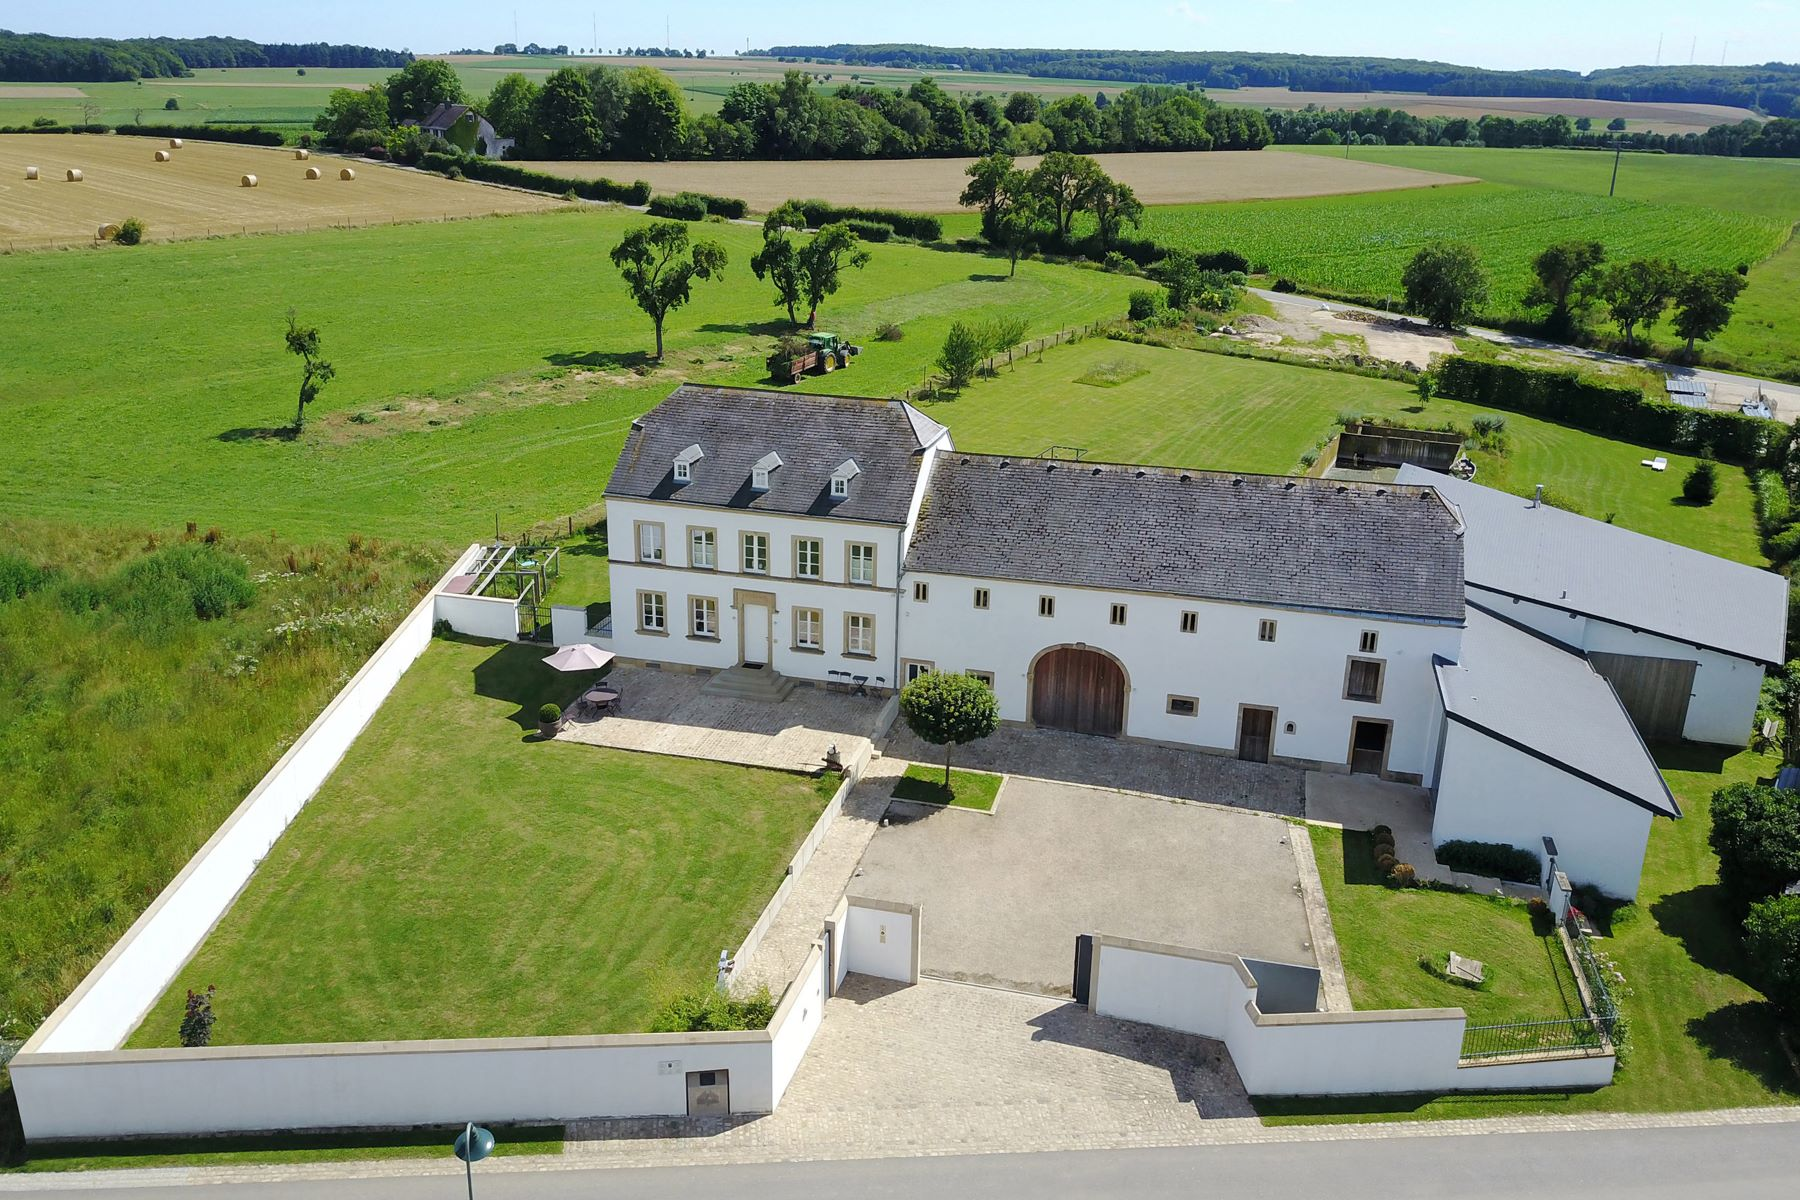 Casa Unifamiliar por un Venta en Beautiful farmhouse in Breidweiler Luxembourg, Luxemburgo 6238 Luxemburgo